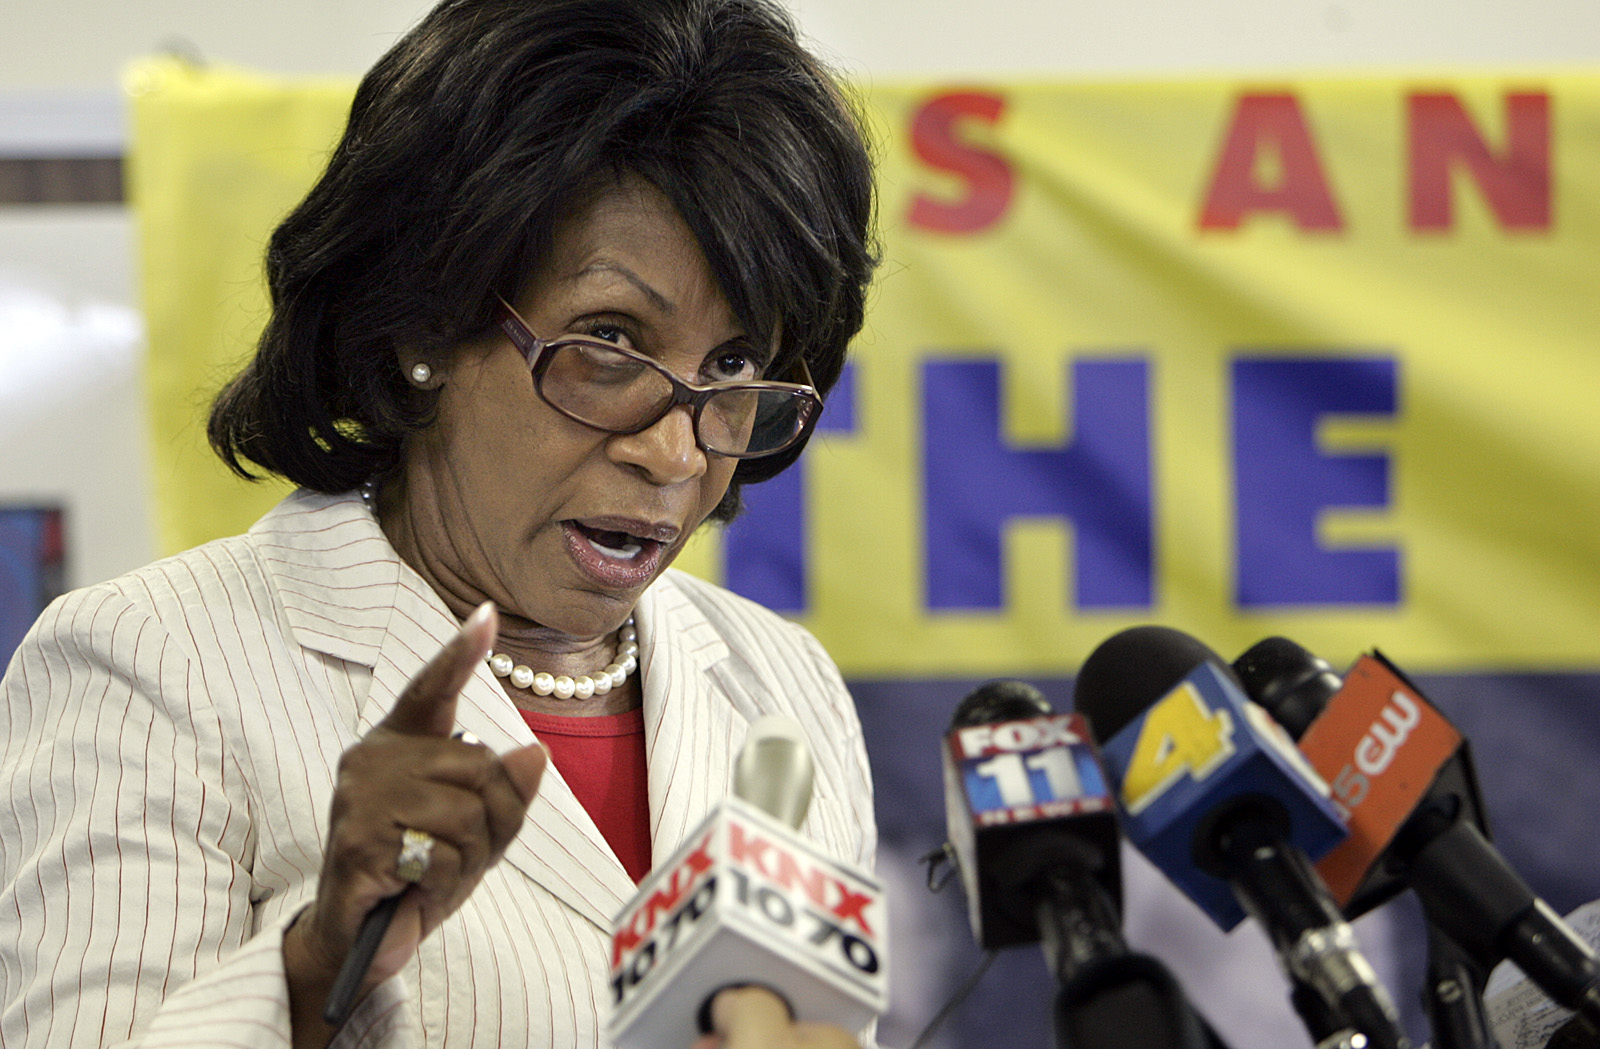 Congresswoman Maxine Waters spoke in favor of the impeachment of President Bush and the vice Presid